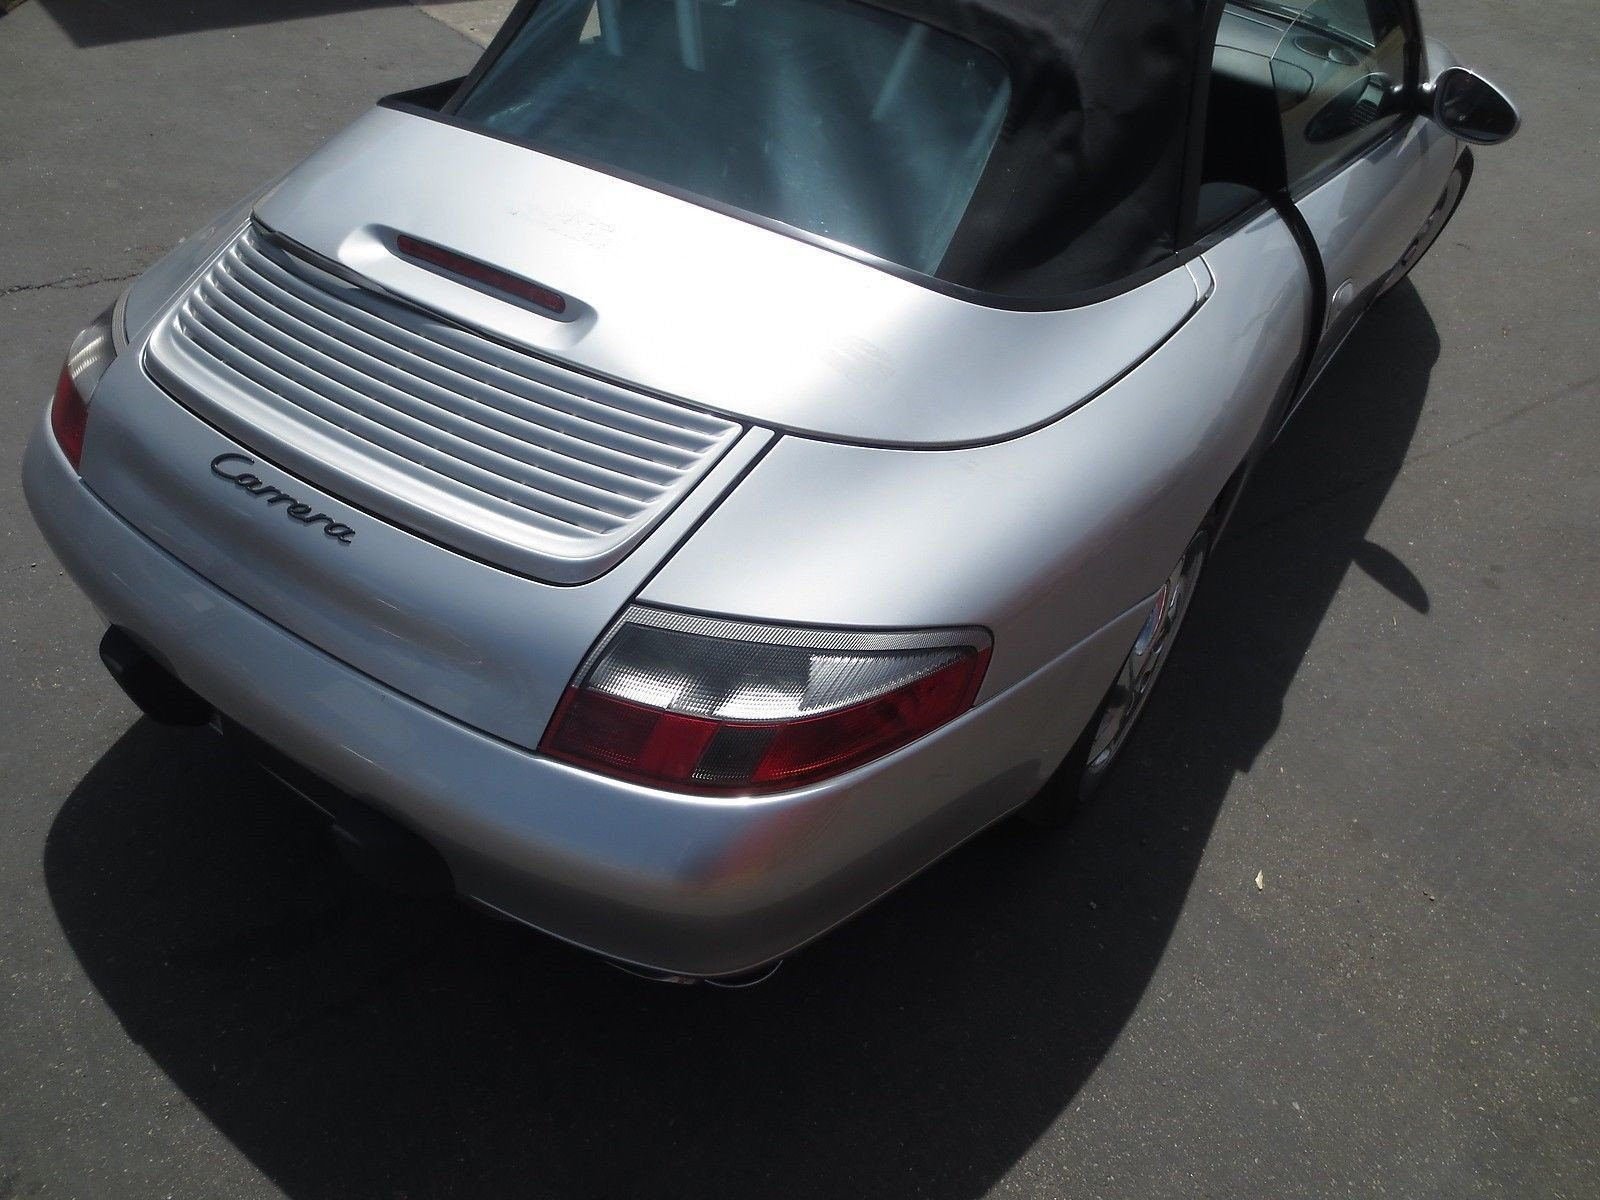 2000 Porsche 911 Carrera 996 Convertible Parting Out car parts 61,472